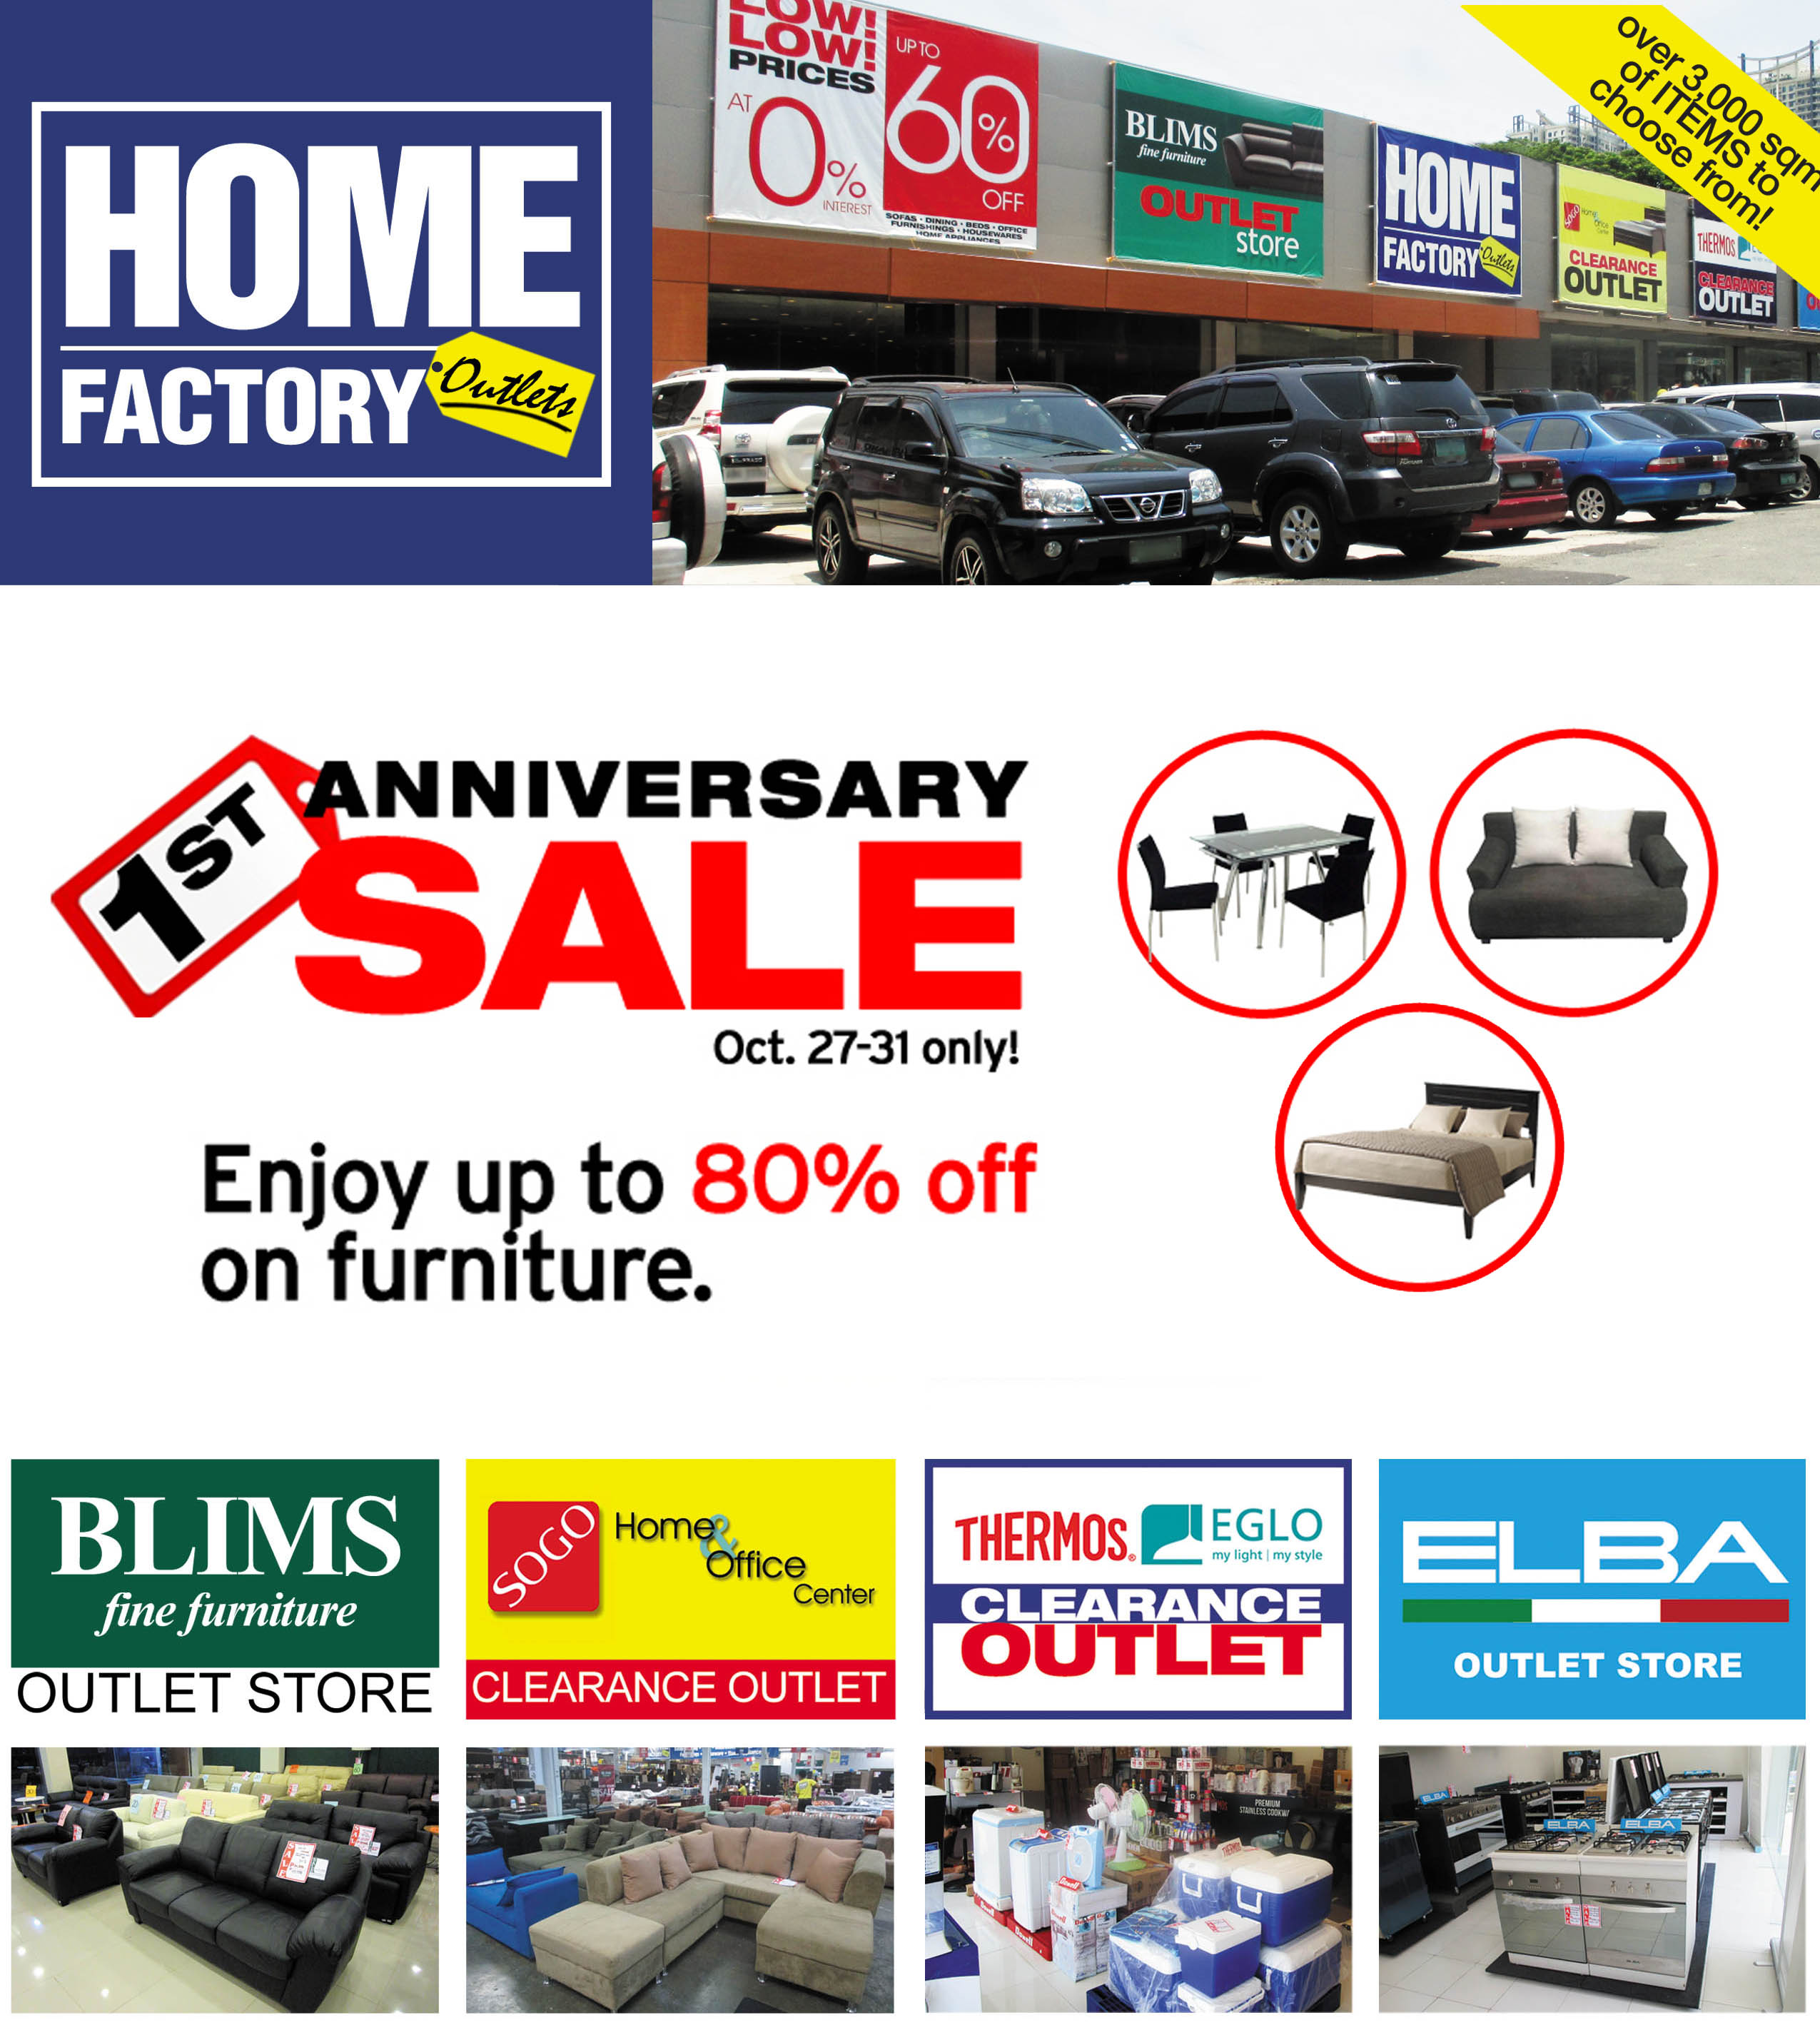 Home Factory Outlets Anniversary Sale On October 27 To 31 2016 The Misis Chronicles Working